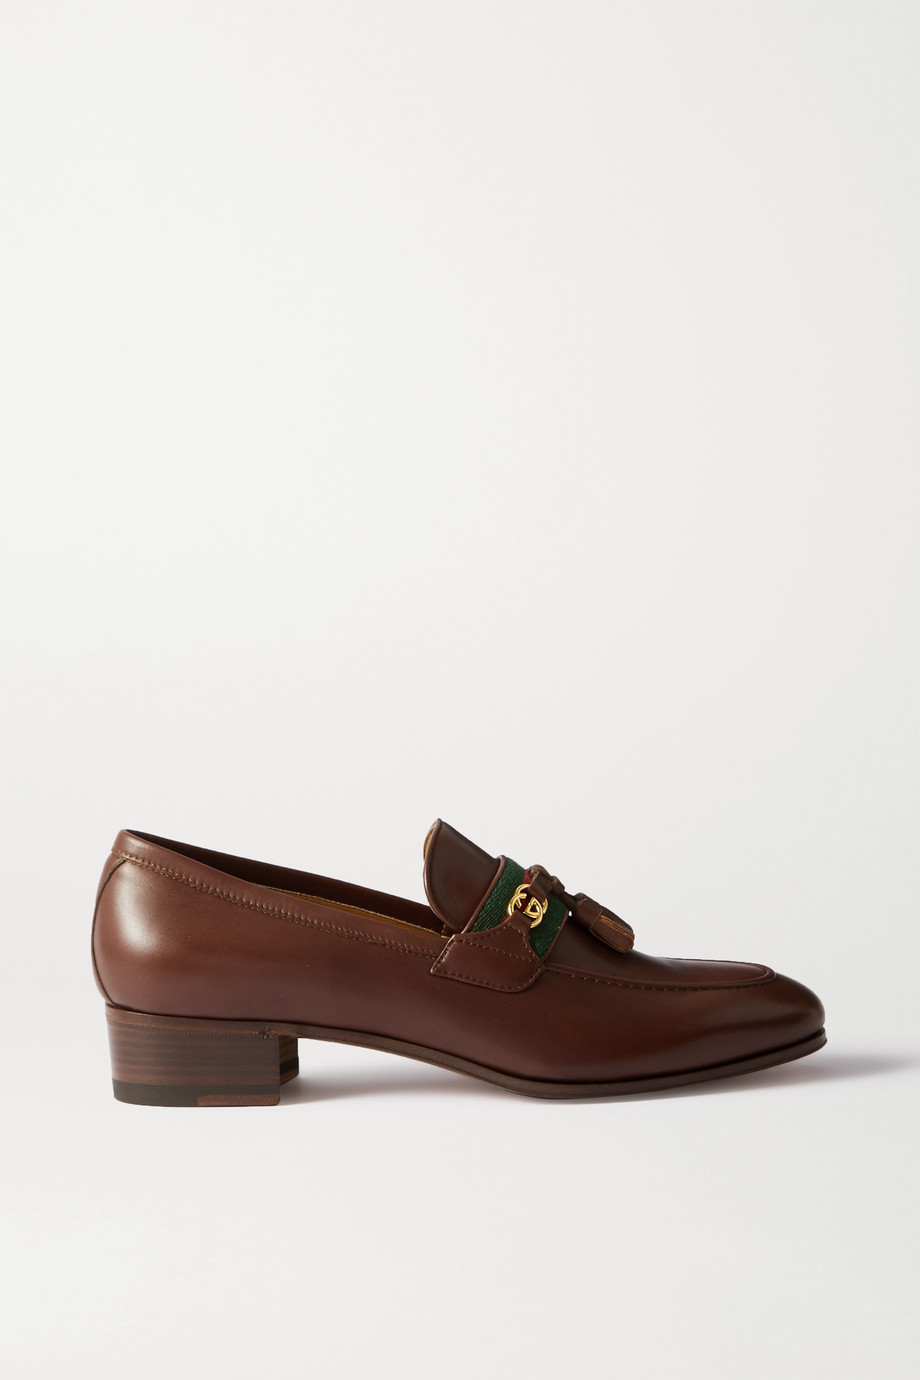 Gucci Paride logo-detailed grosgrain-trimmed leather loafers